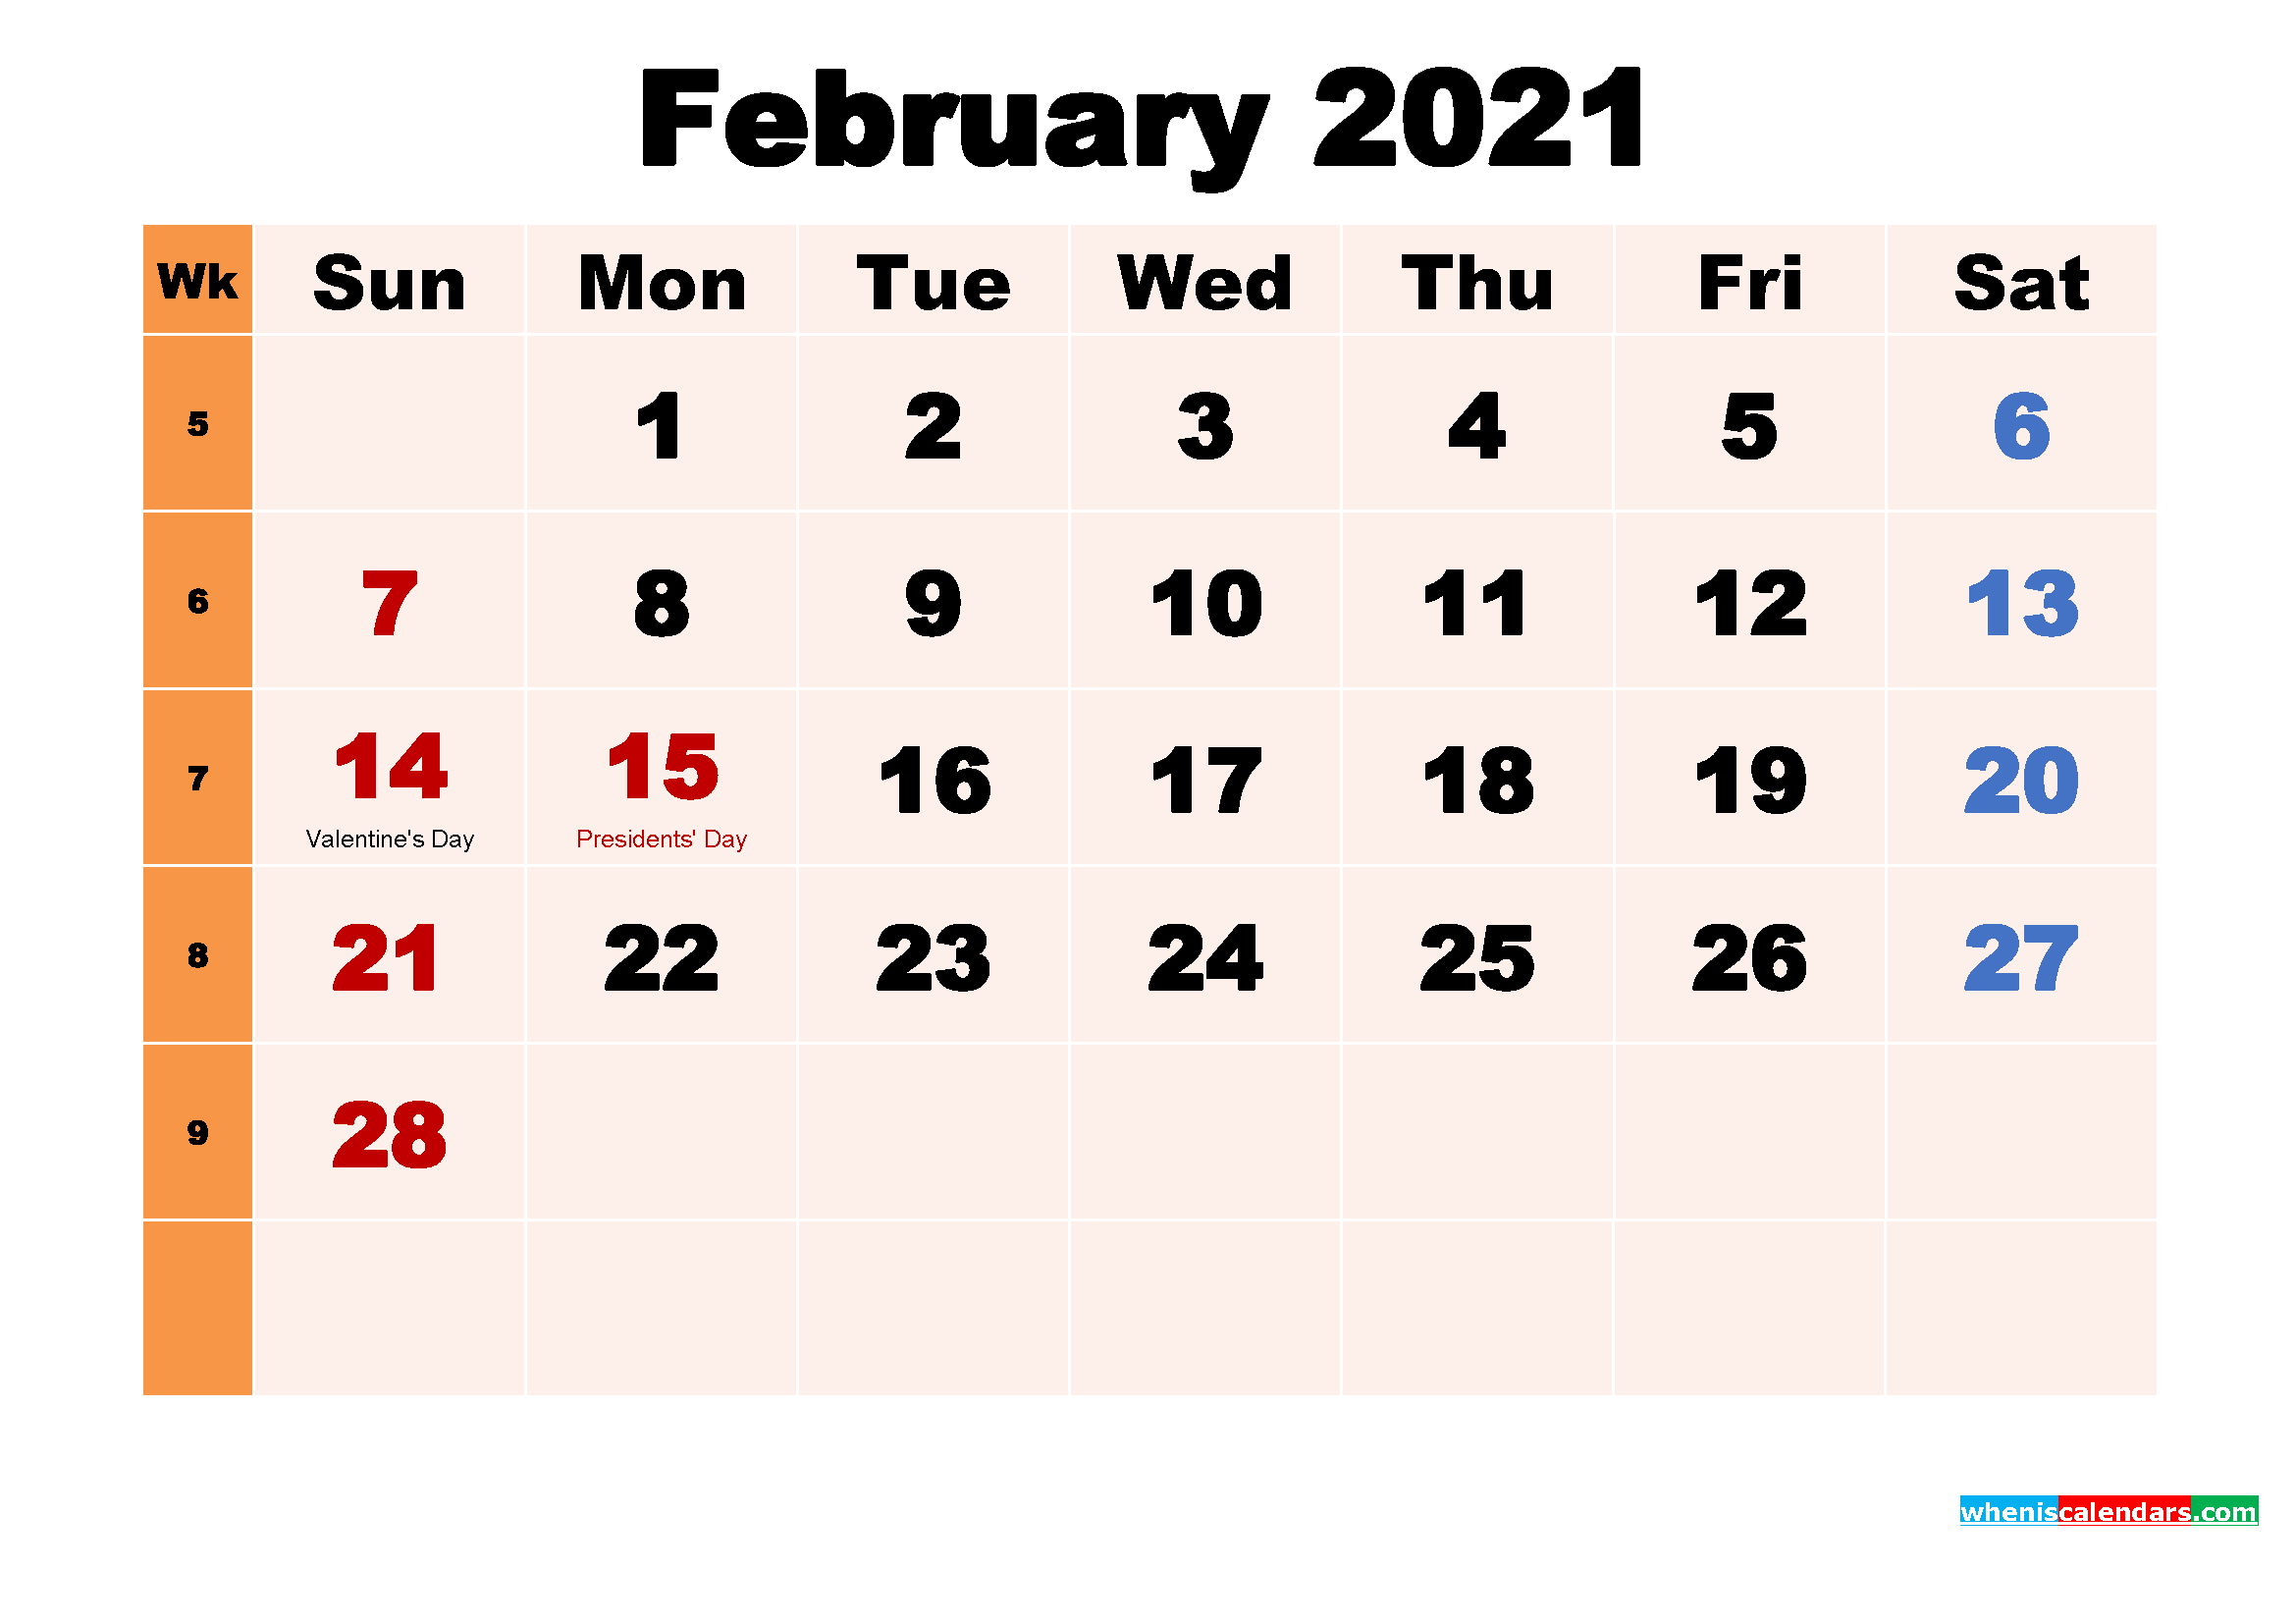 February 2021 Calendar Wallpaper Free Download